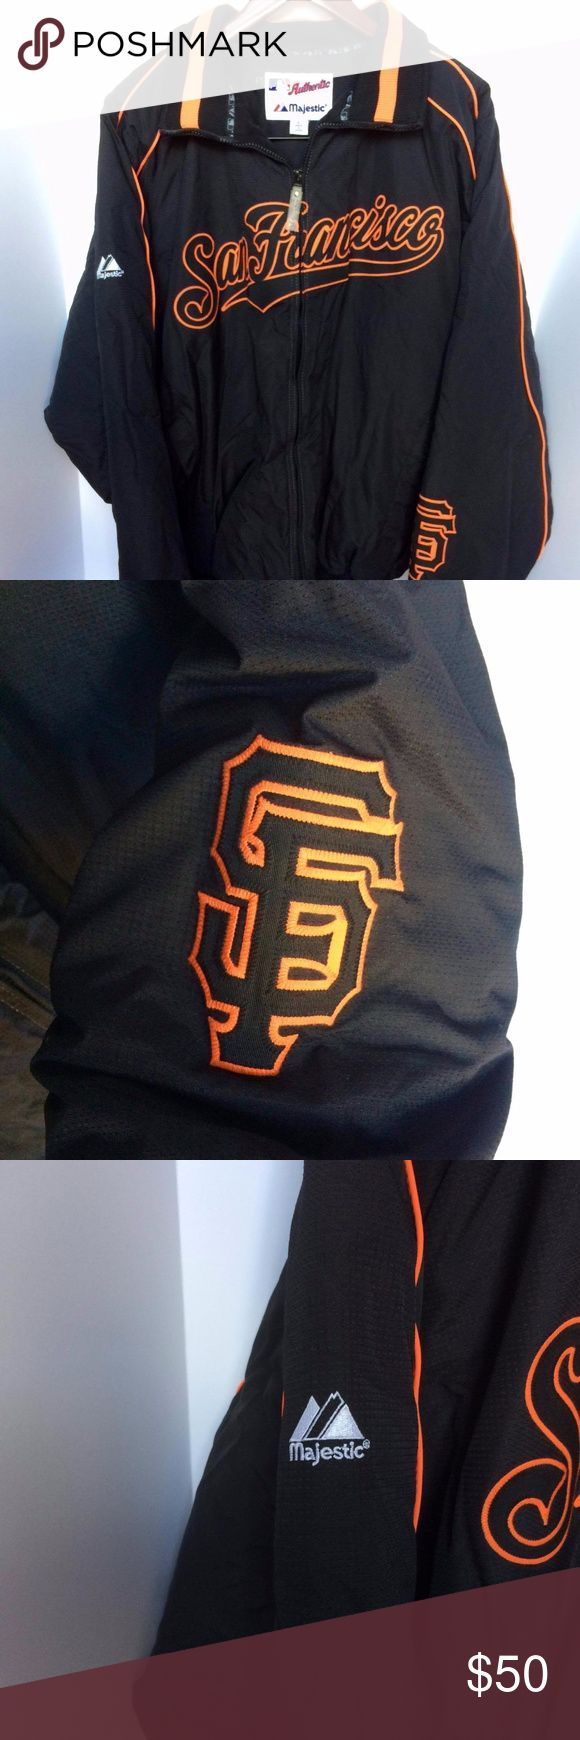 Majestic MLB San Fransico Giants Jacket This Jacket by Majestic is a must have for anyone to add to their collection.  This jacket is good quality and with last a lifetime, Majestic is known to deliver quality and this is just another example of them doing just that. This jacket is easy to pair with your favorite pair of denim pants which makes it easy to wear anytime any where. Majestic Jackets & Coats Bomber & Varsity